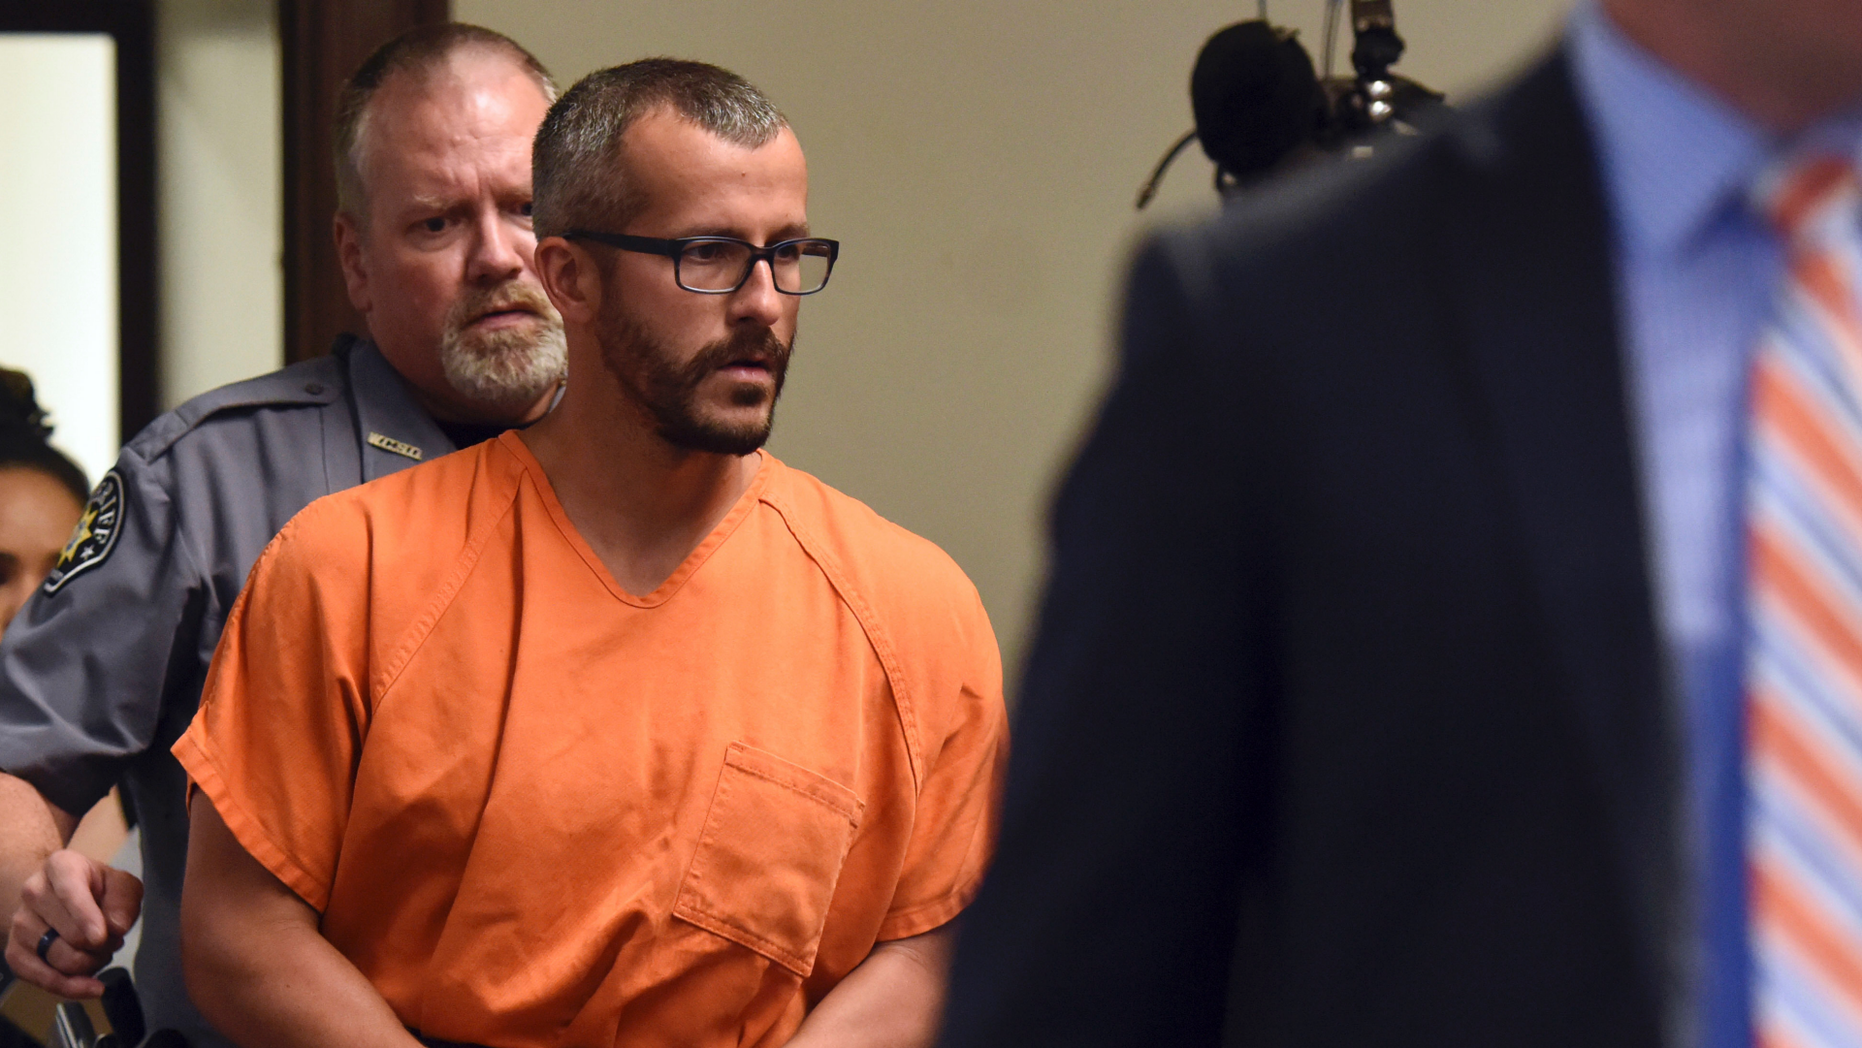 Colorado man jailed for wife and daughters' murders